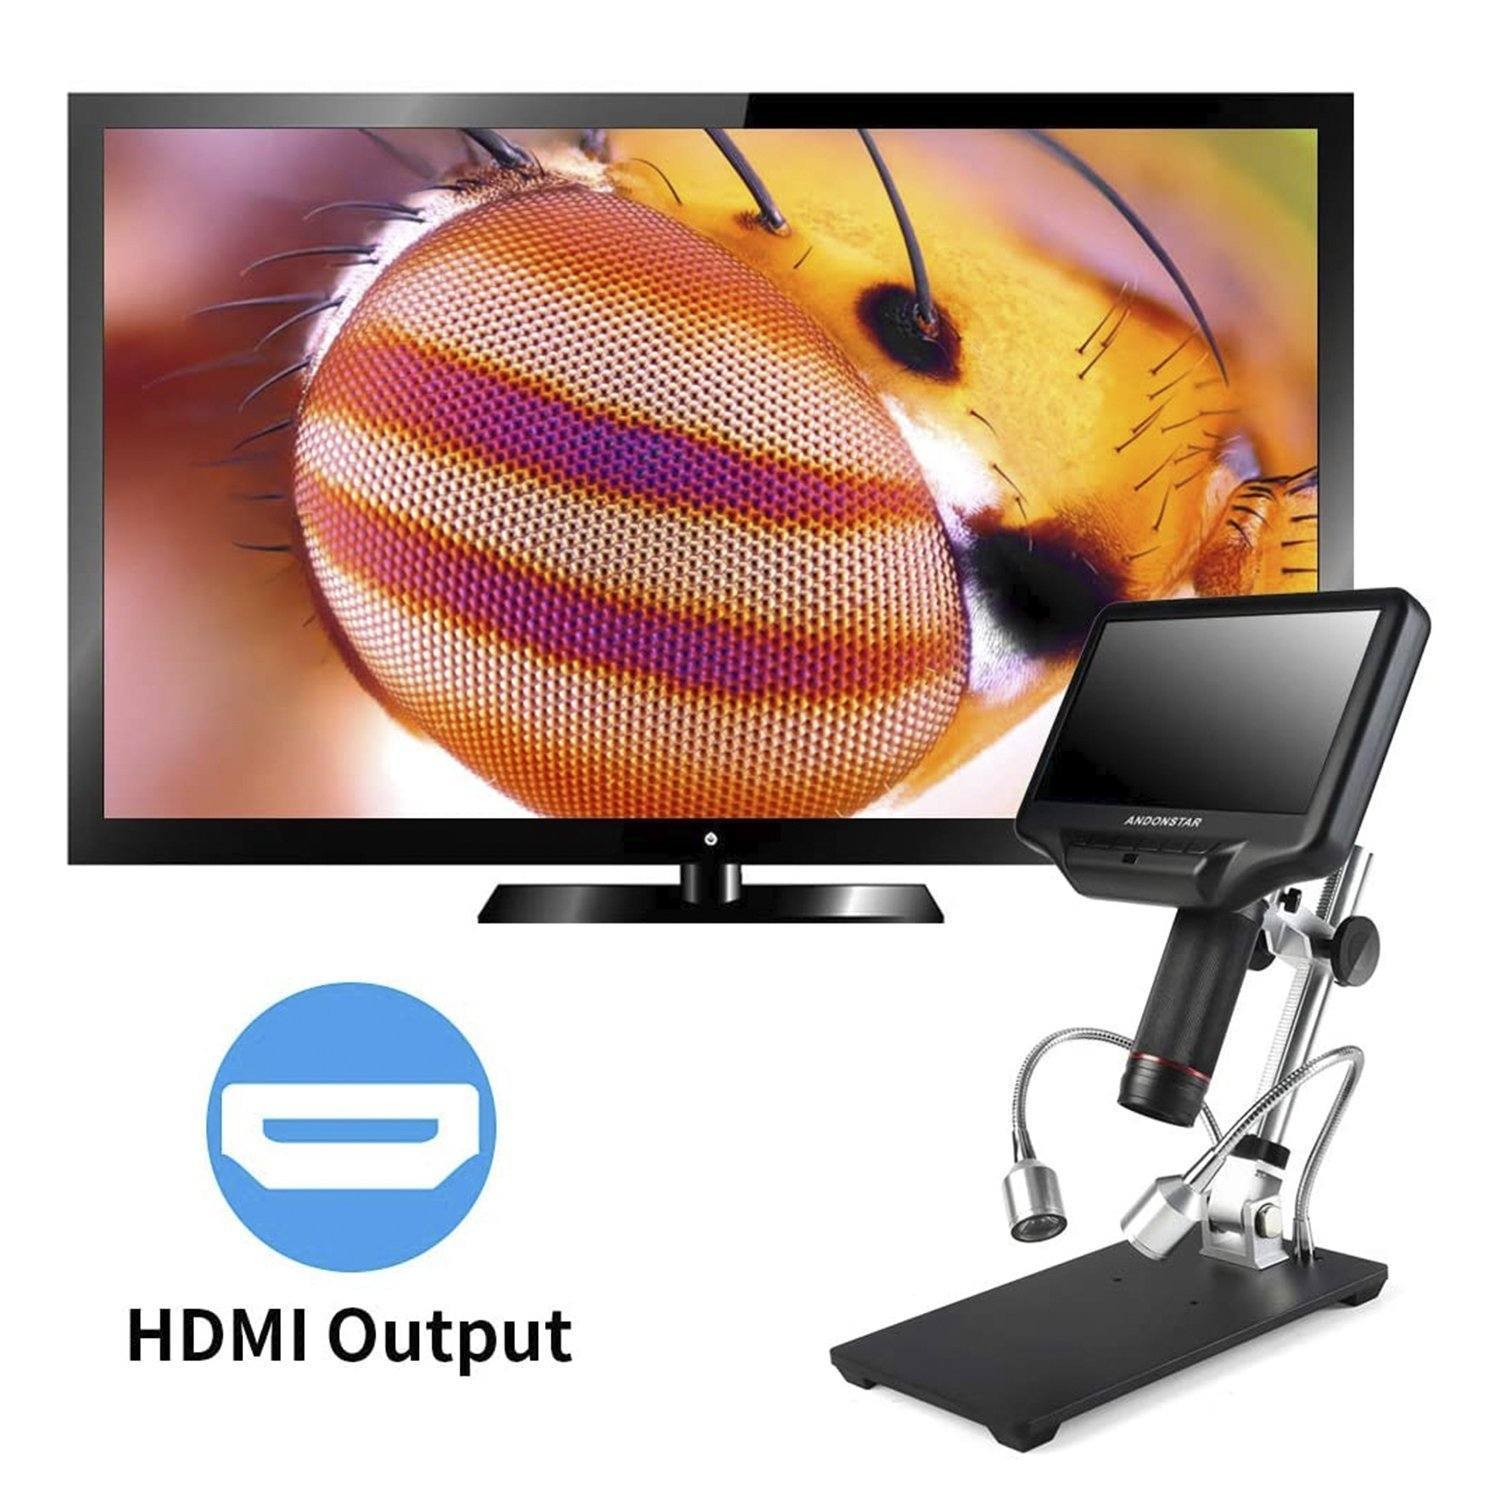 Review of Andonstar AD407 3D HDMI Digital Microscope